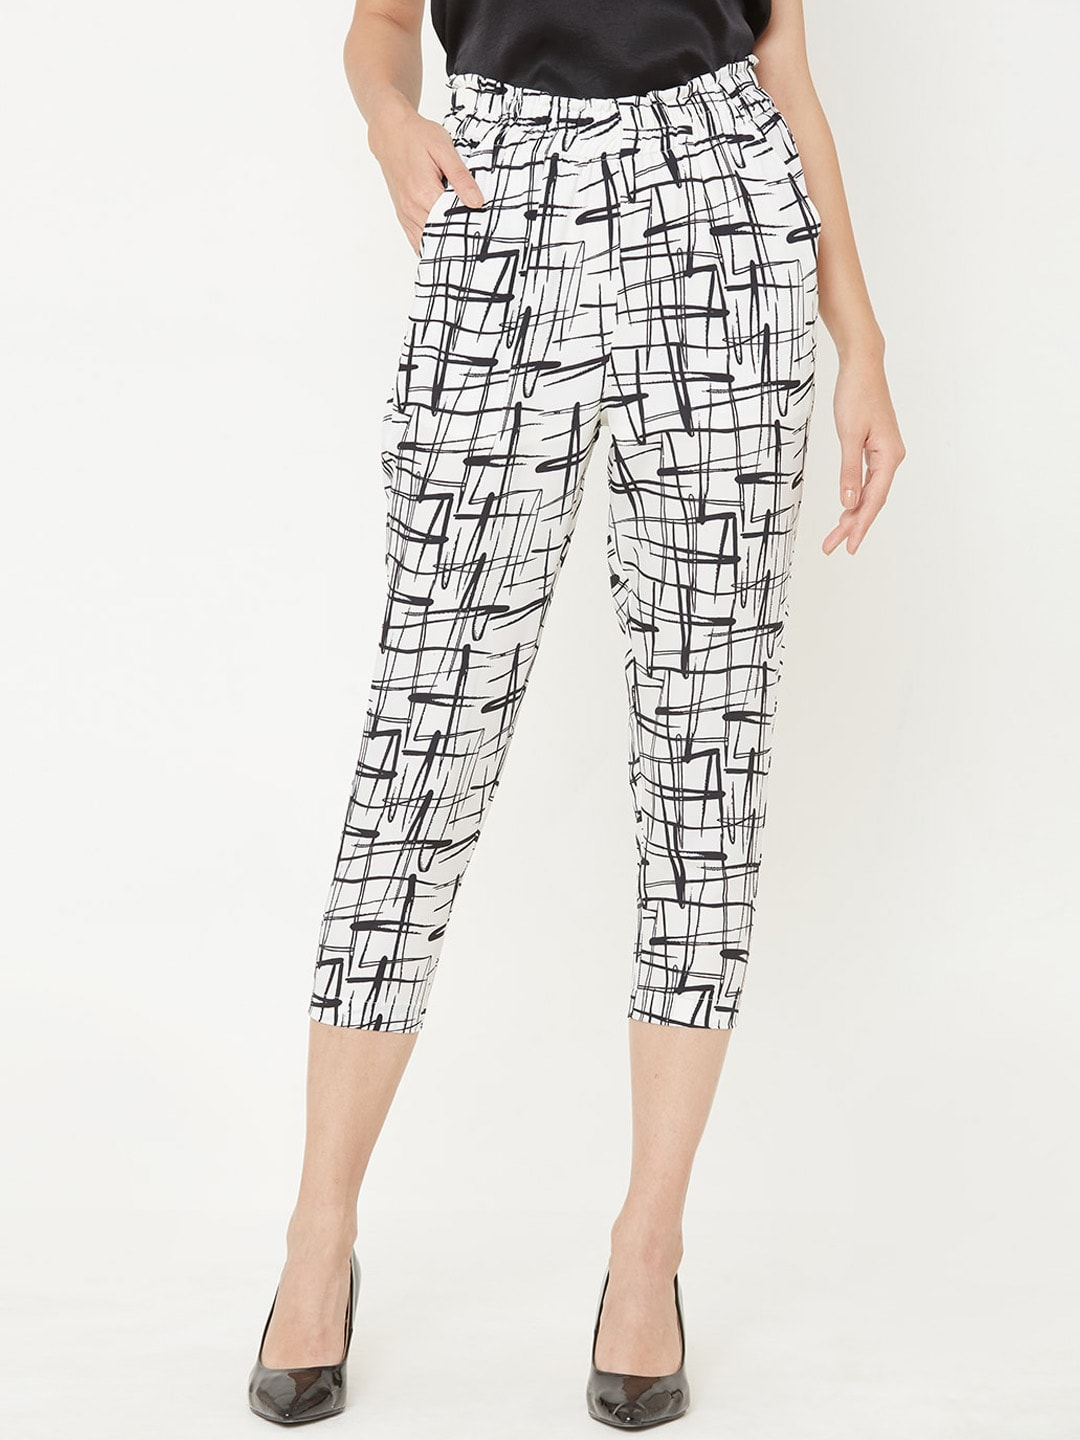 MISH Women Off-White & Black Comfort Regular Fit Printed Regular Trousers